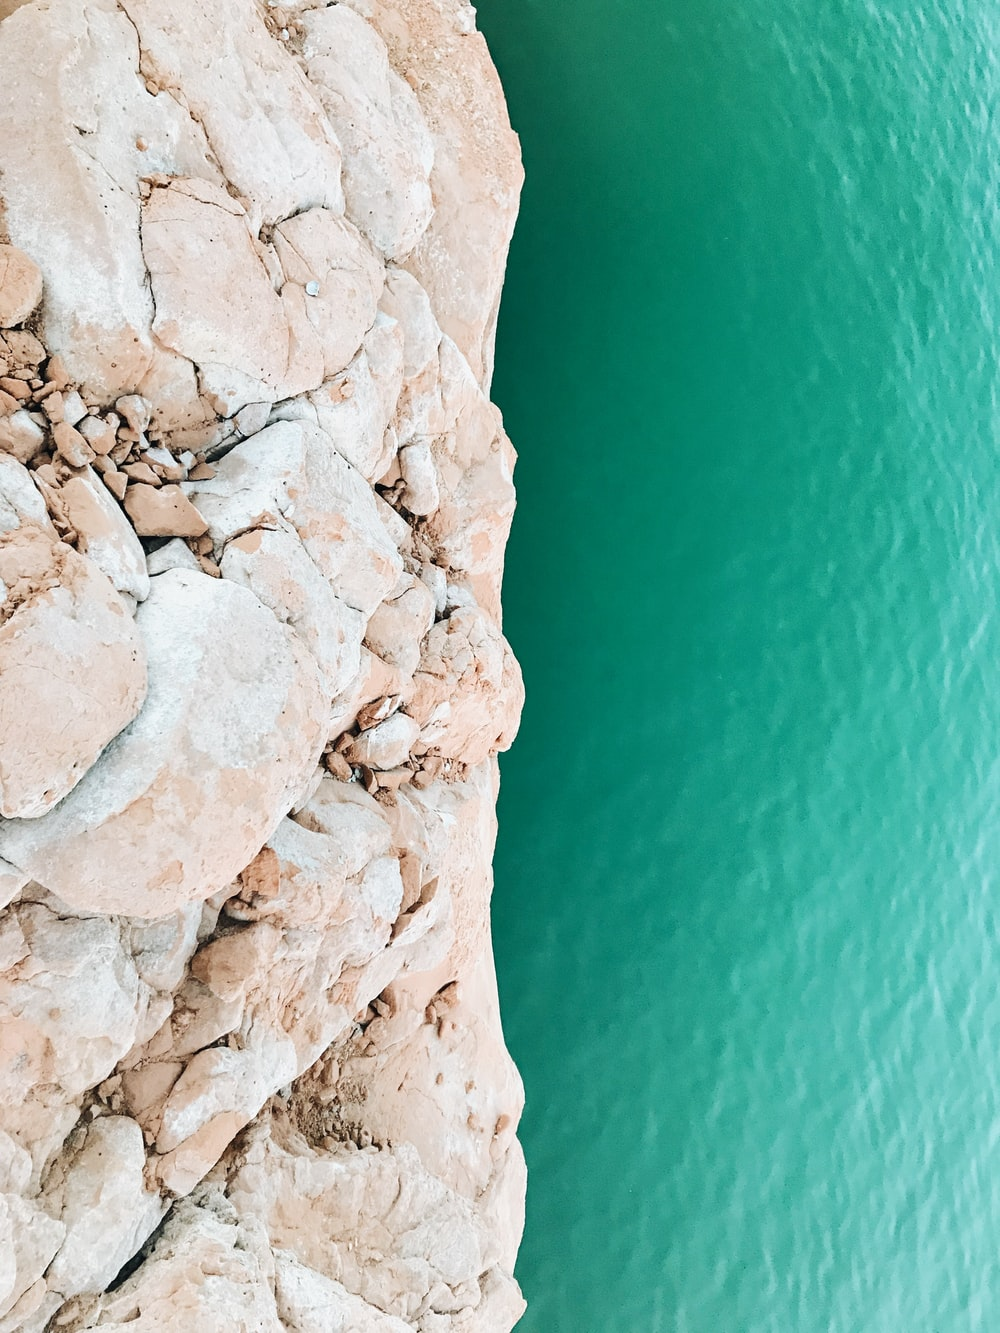 brown rock formation beside beach during daytime